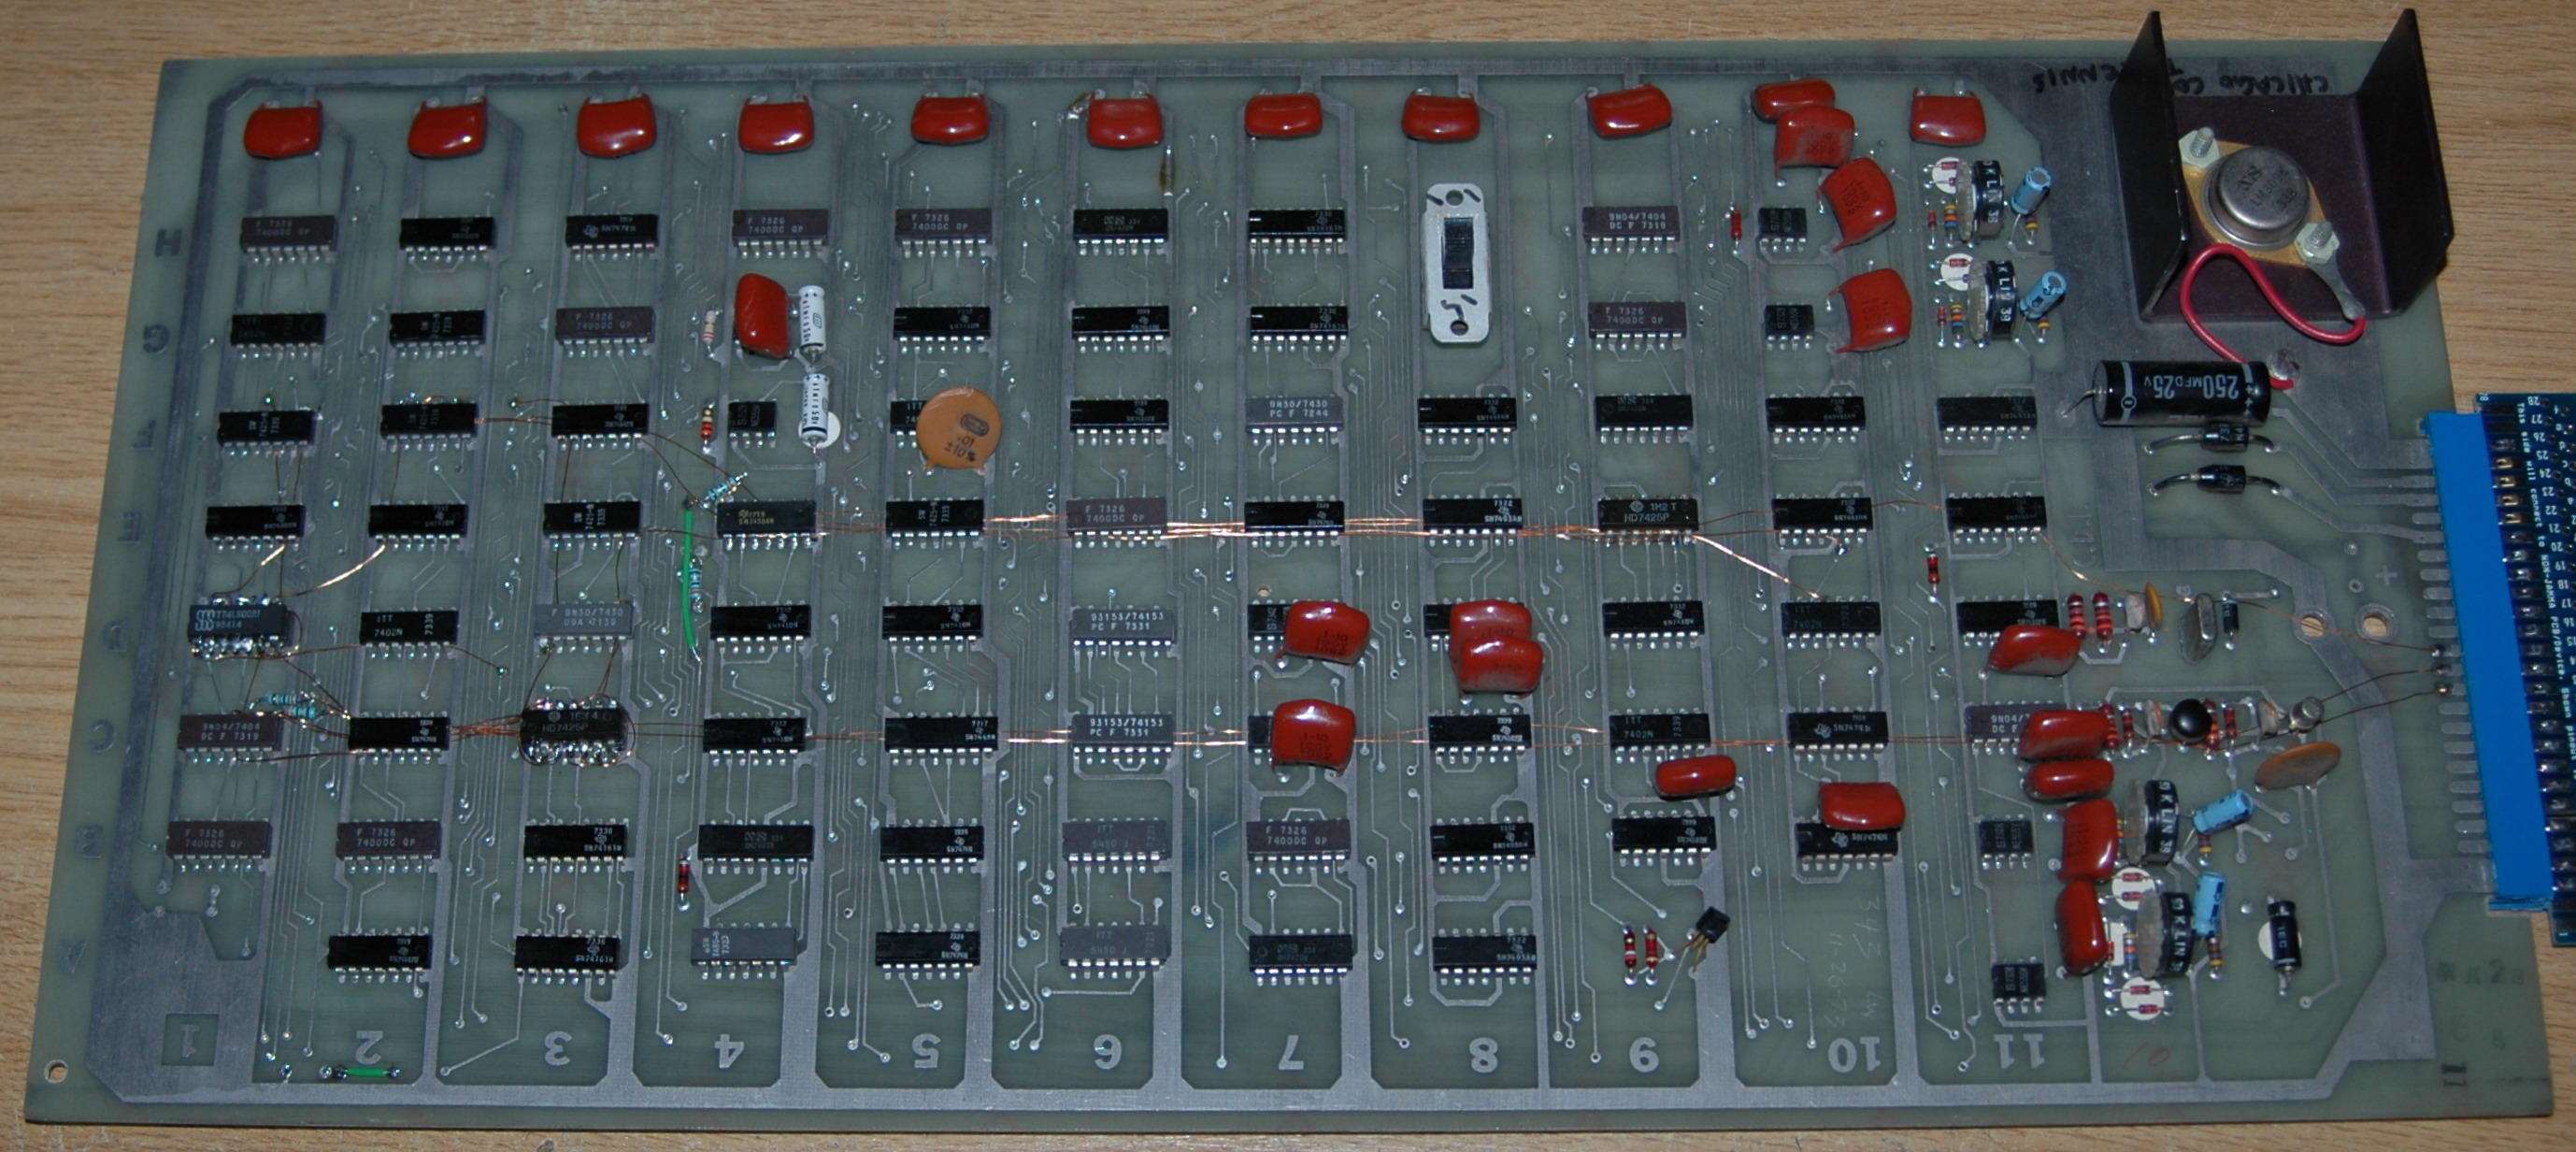 Andys Tv Tennis Pong In Colour Page Atari Wiring Diagram Here Is A Large Photo Of The Pcb As It Modded Now You Can See Theres Quite Number Patch Wires I Used 32swg Enameled Winding Wire